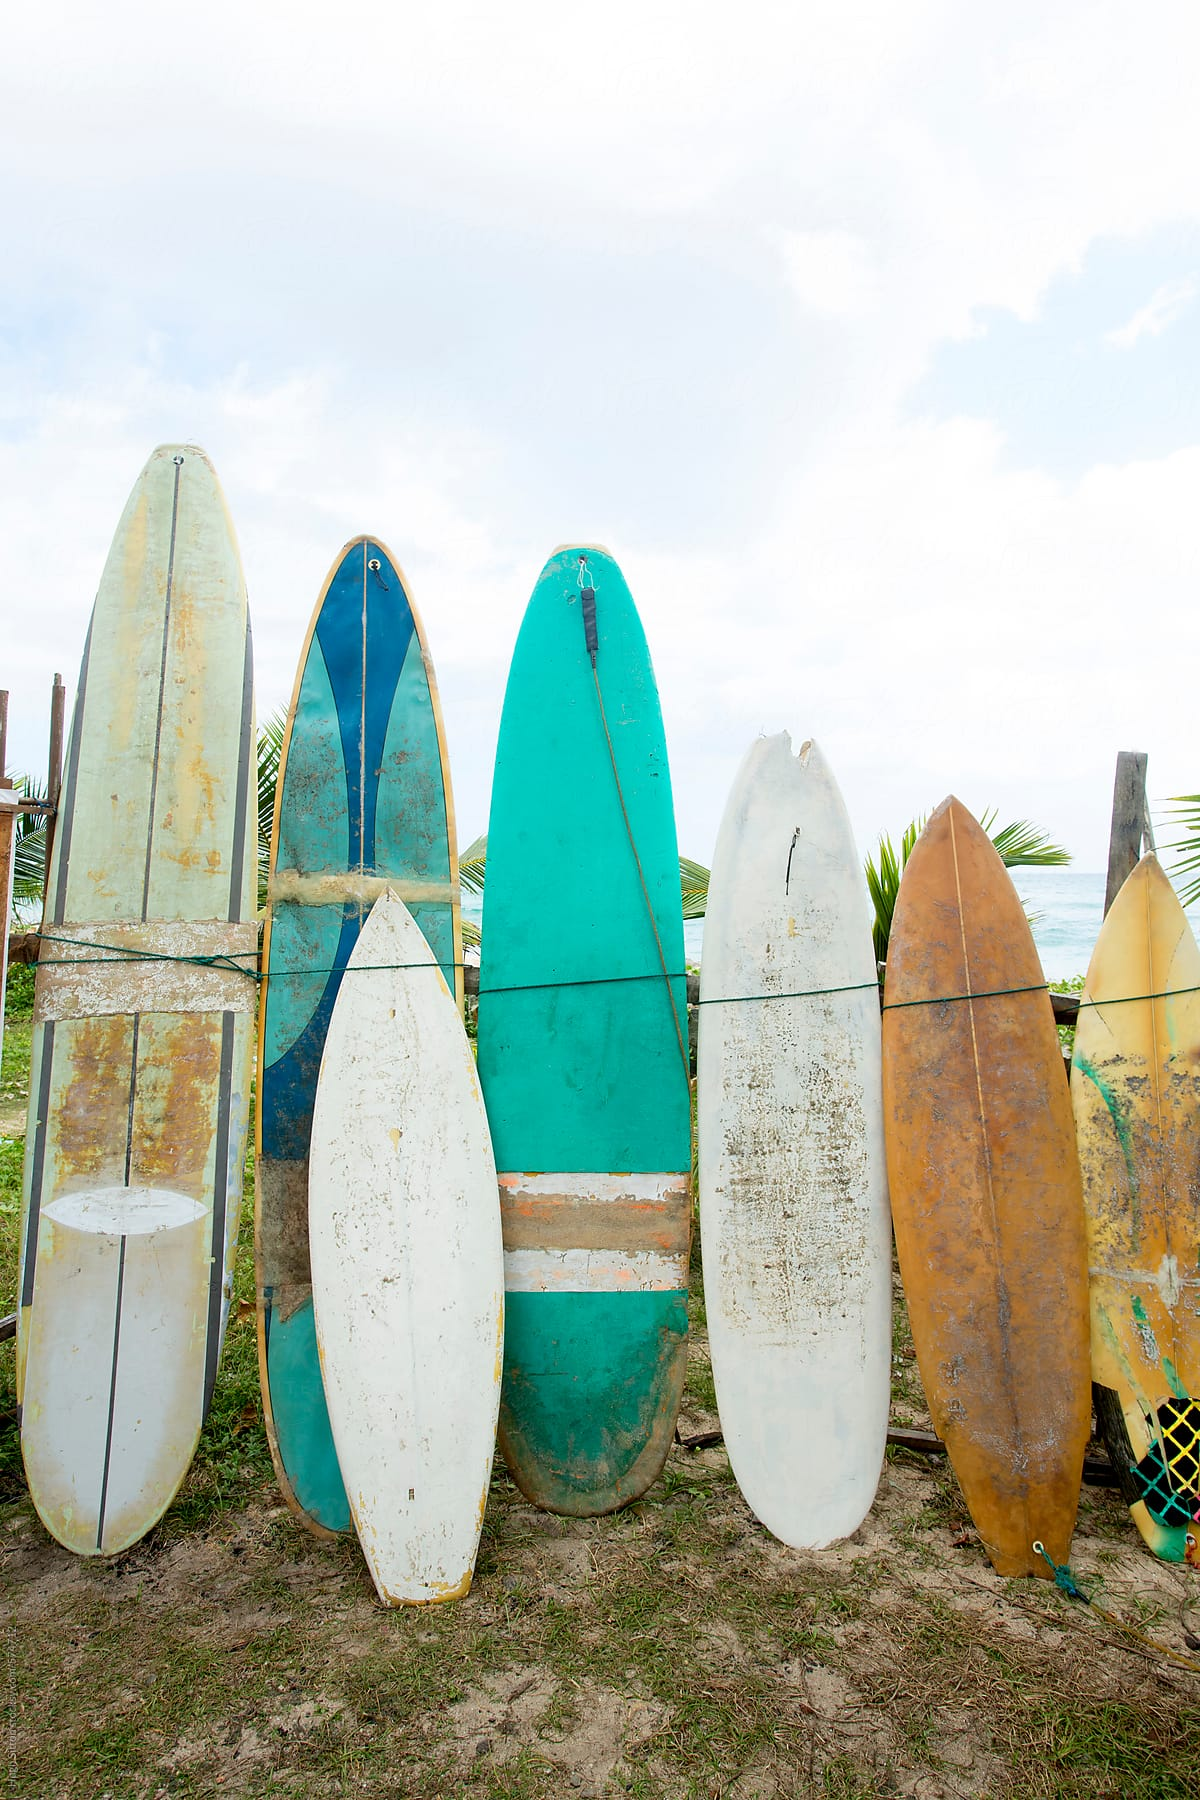 Selection Of Colourful Old Surfboards Sri Lanka Stocksy United